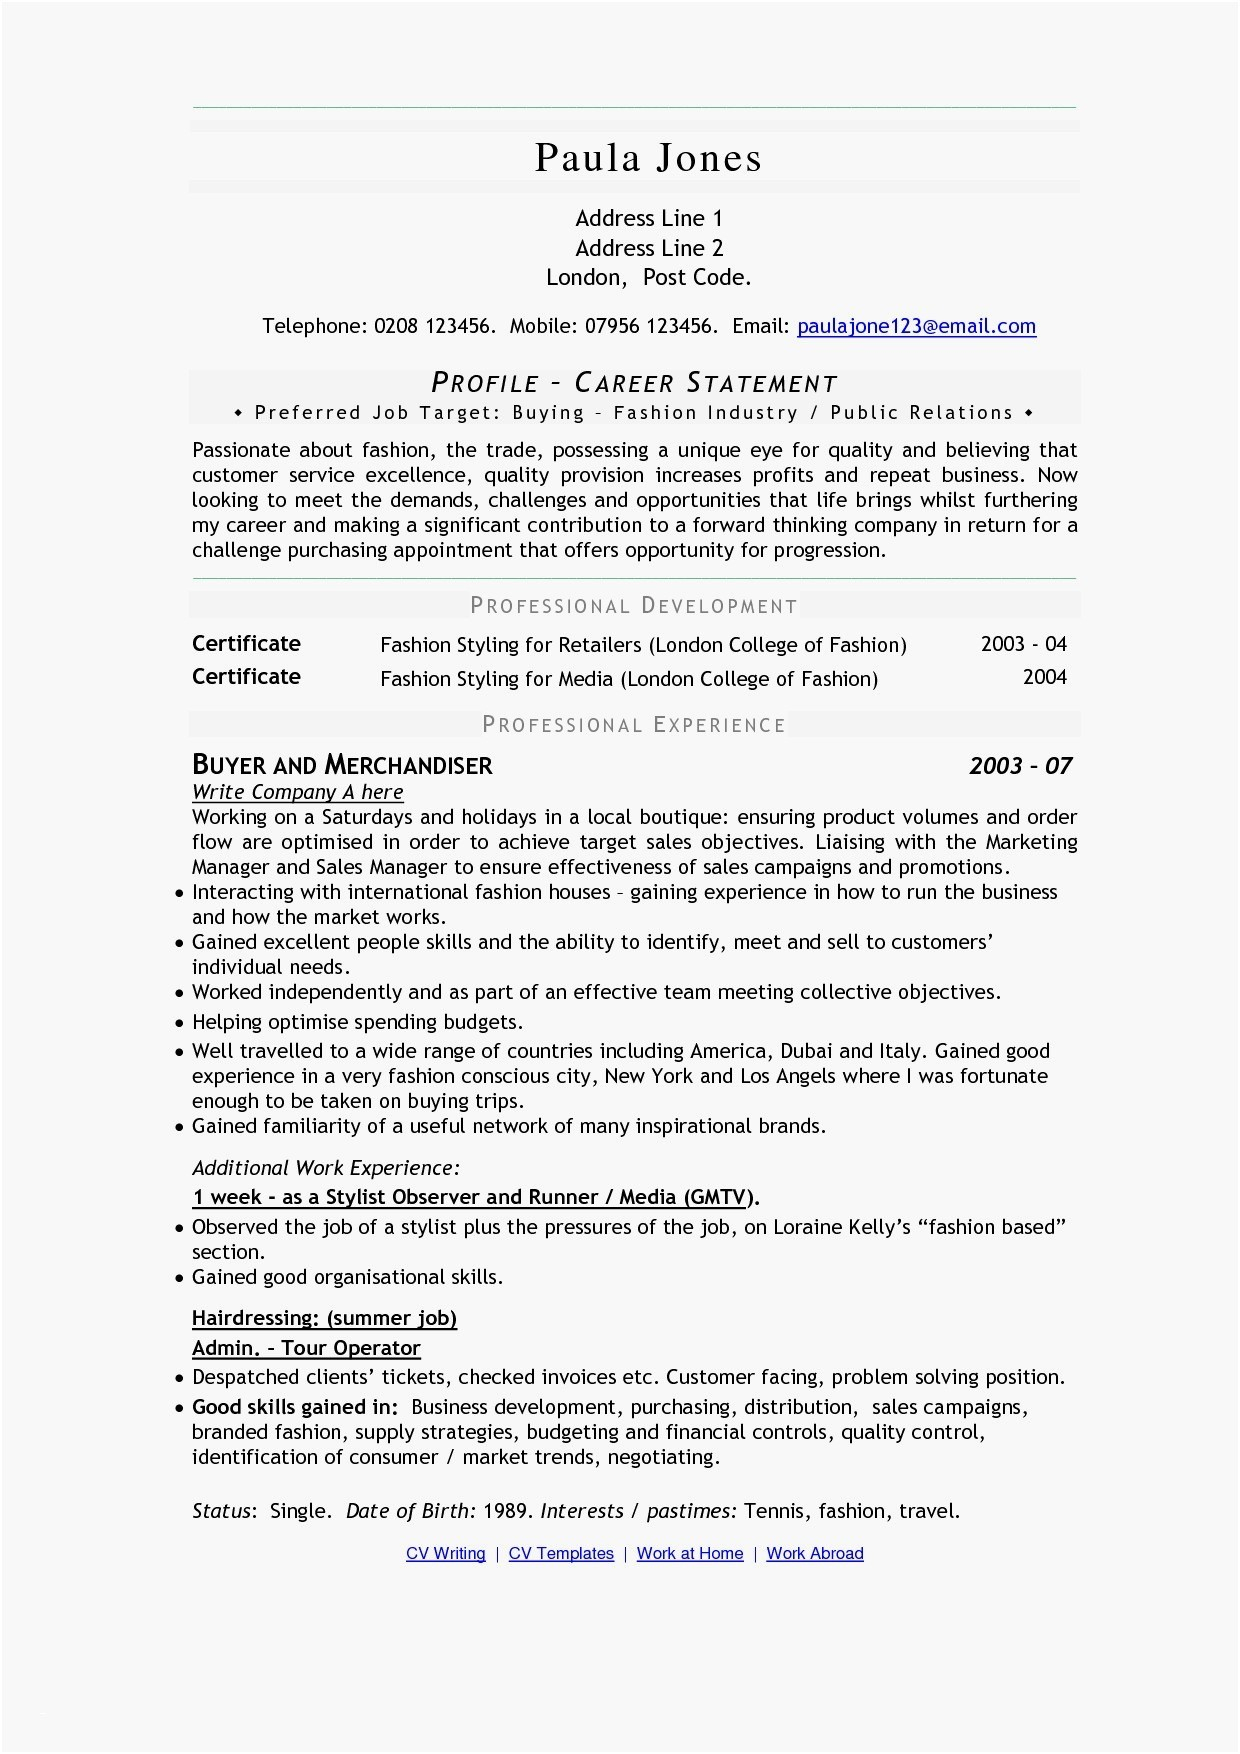 Executive Resume Writing Services - Writing Skills Resume Lovely Resume Writing Services Aggiegeeks